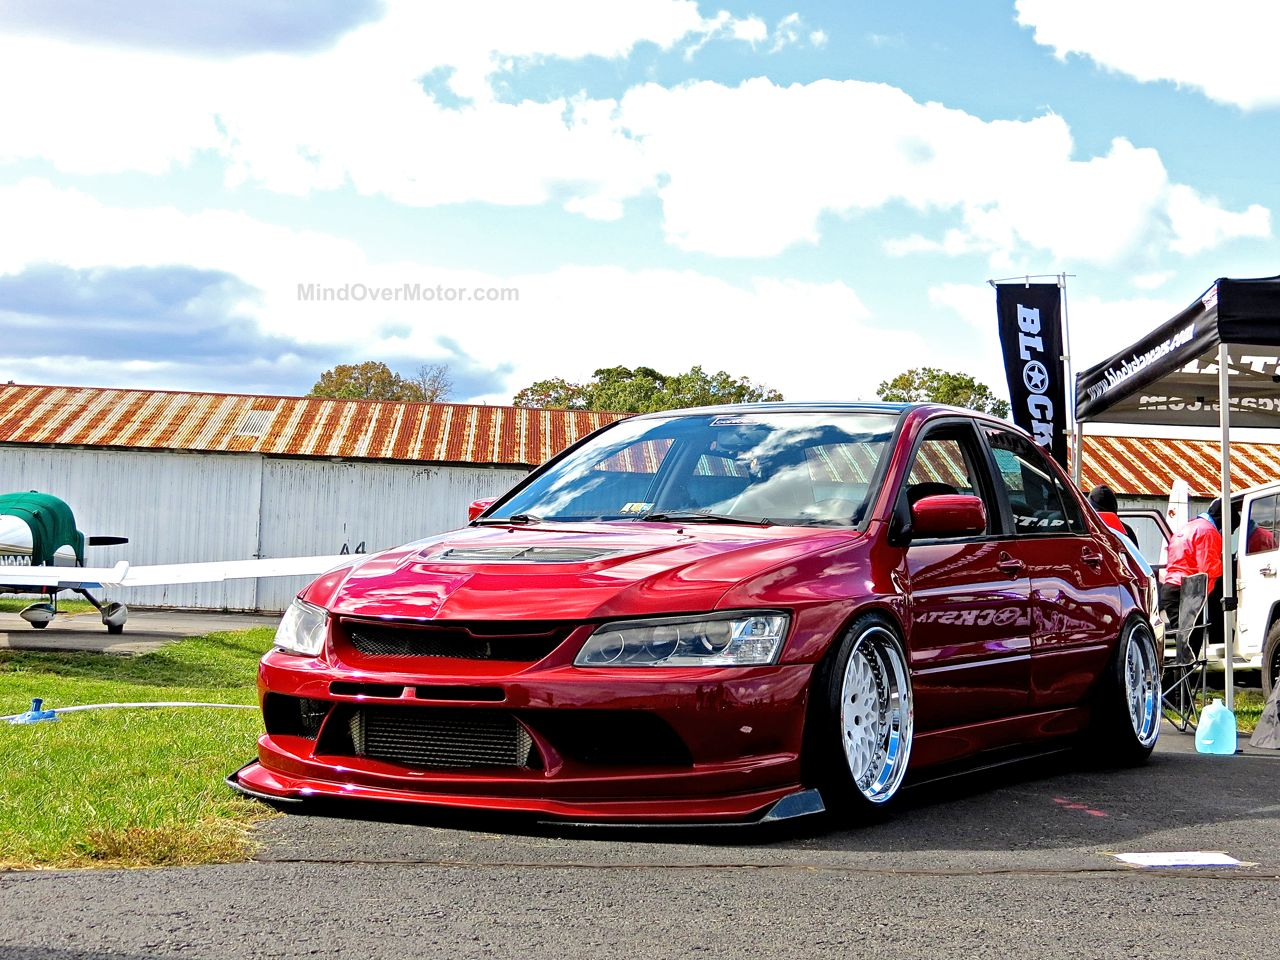 Stanced Red Mitsubishi Evo First Class Fitment 1